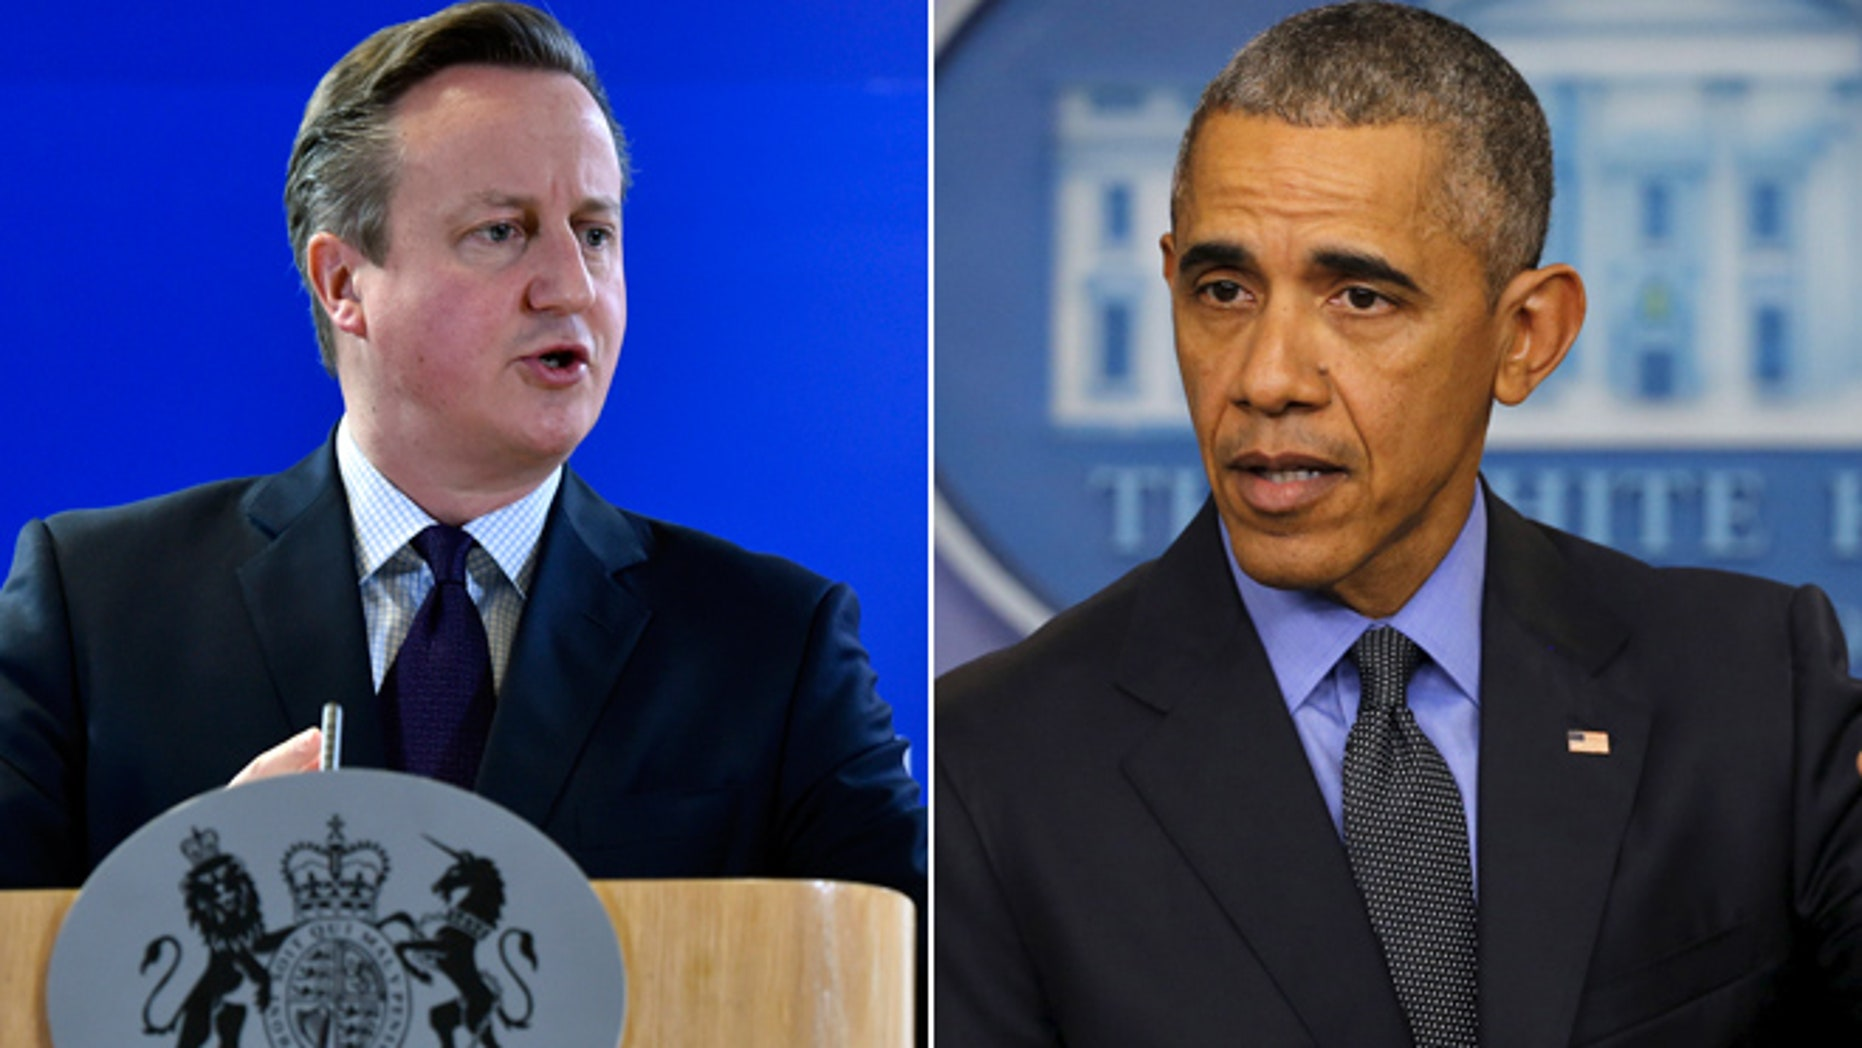 On left, UK Prime Minister David Cameron; on right, President Obama